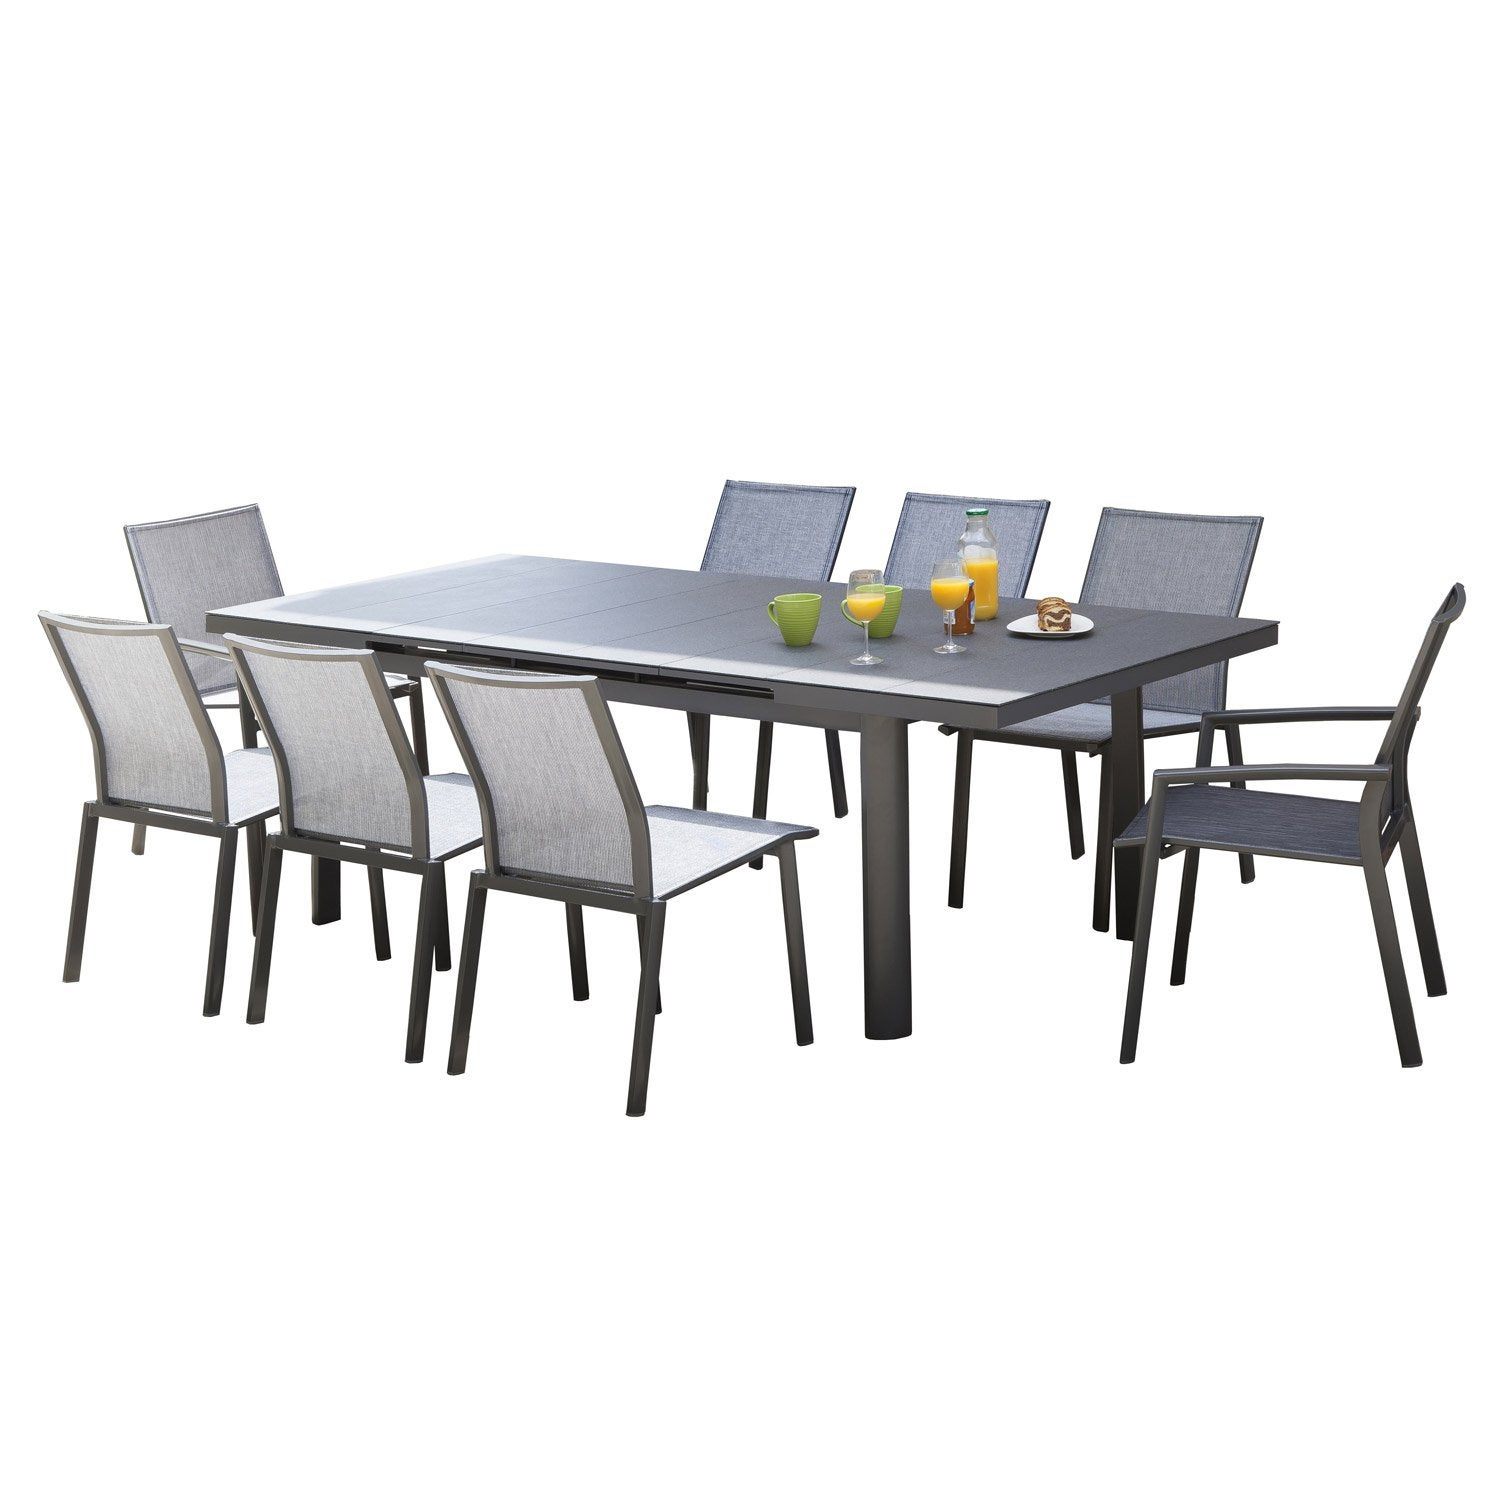 table de jardin bora rectangulaire gris 8 personnes leroy merlin. Black Bedroom Furniture Sets. Home Design Ideas